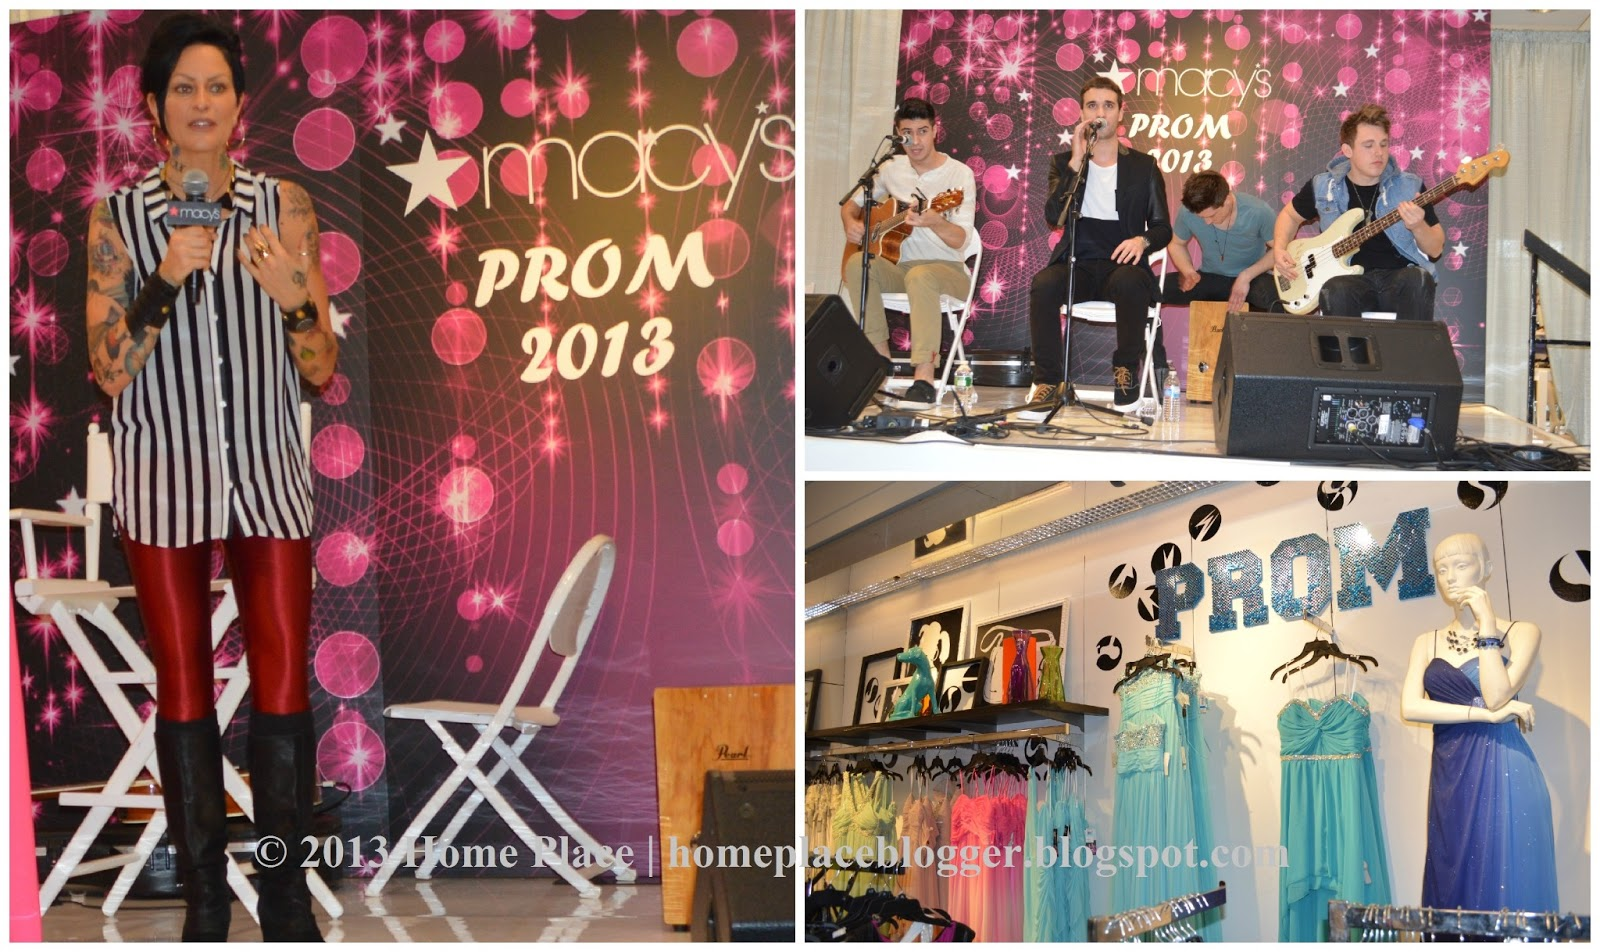 5d60c0768210 Home Place: Macy's Prom Fashion Show - Mandi Line & Action Item ...